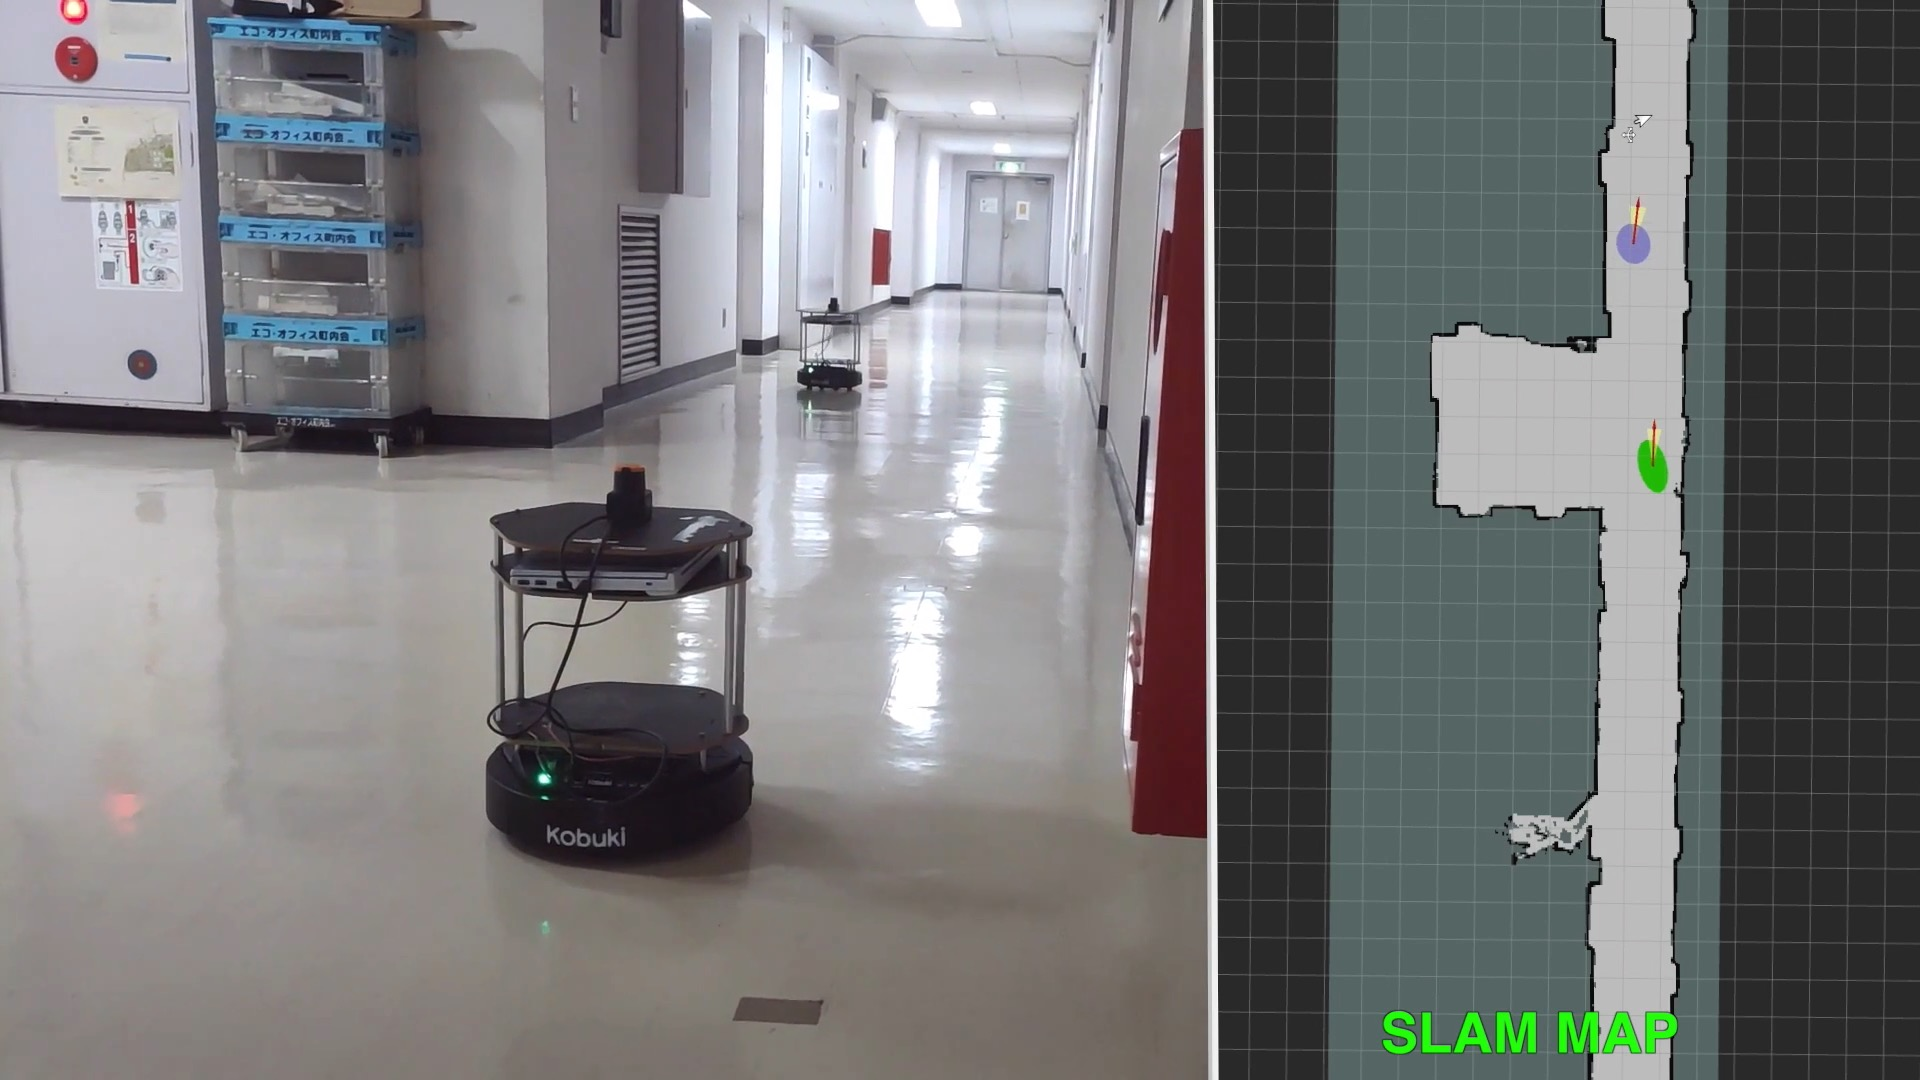 [Demo] Police&Thief : A Demo of Wi-Fi Fingerprint Localization and SLAM Autonomous Navigation